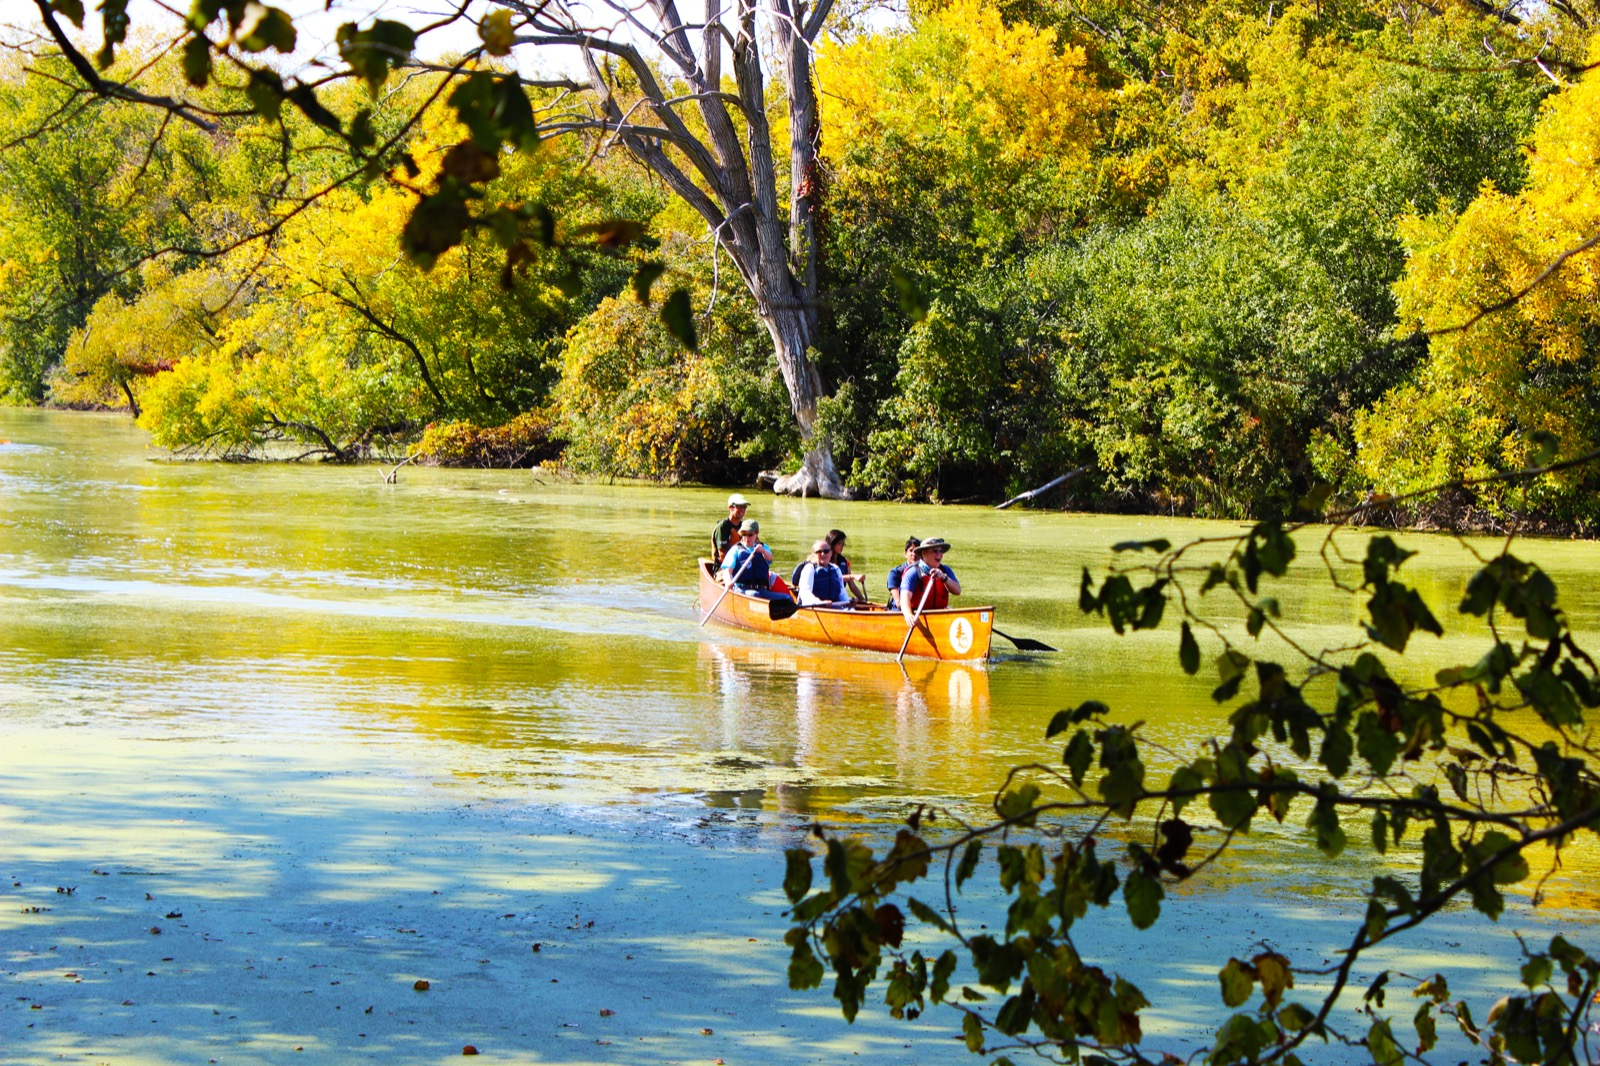 Students from Winnetka, Illinois paddle a Voyageur canoe